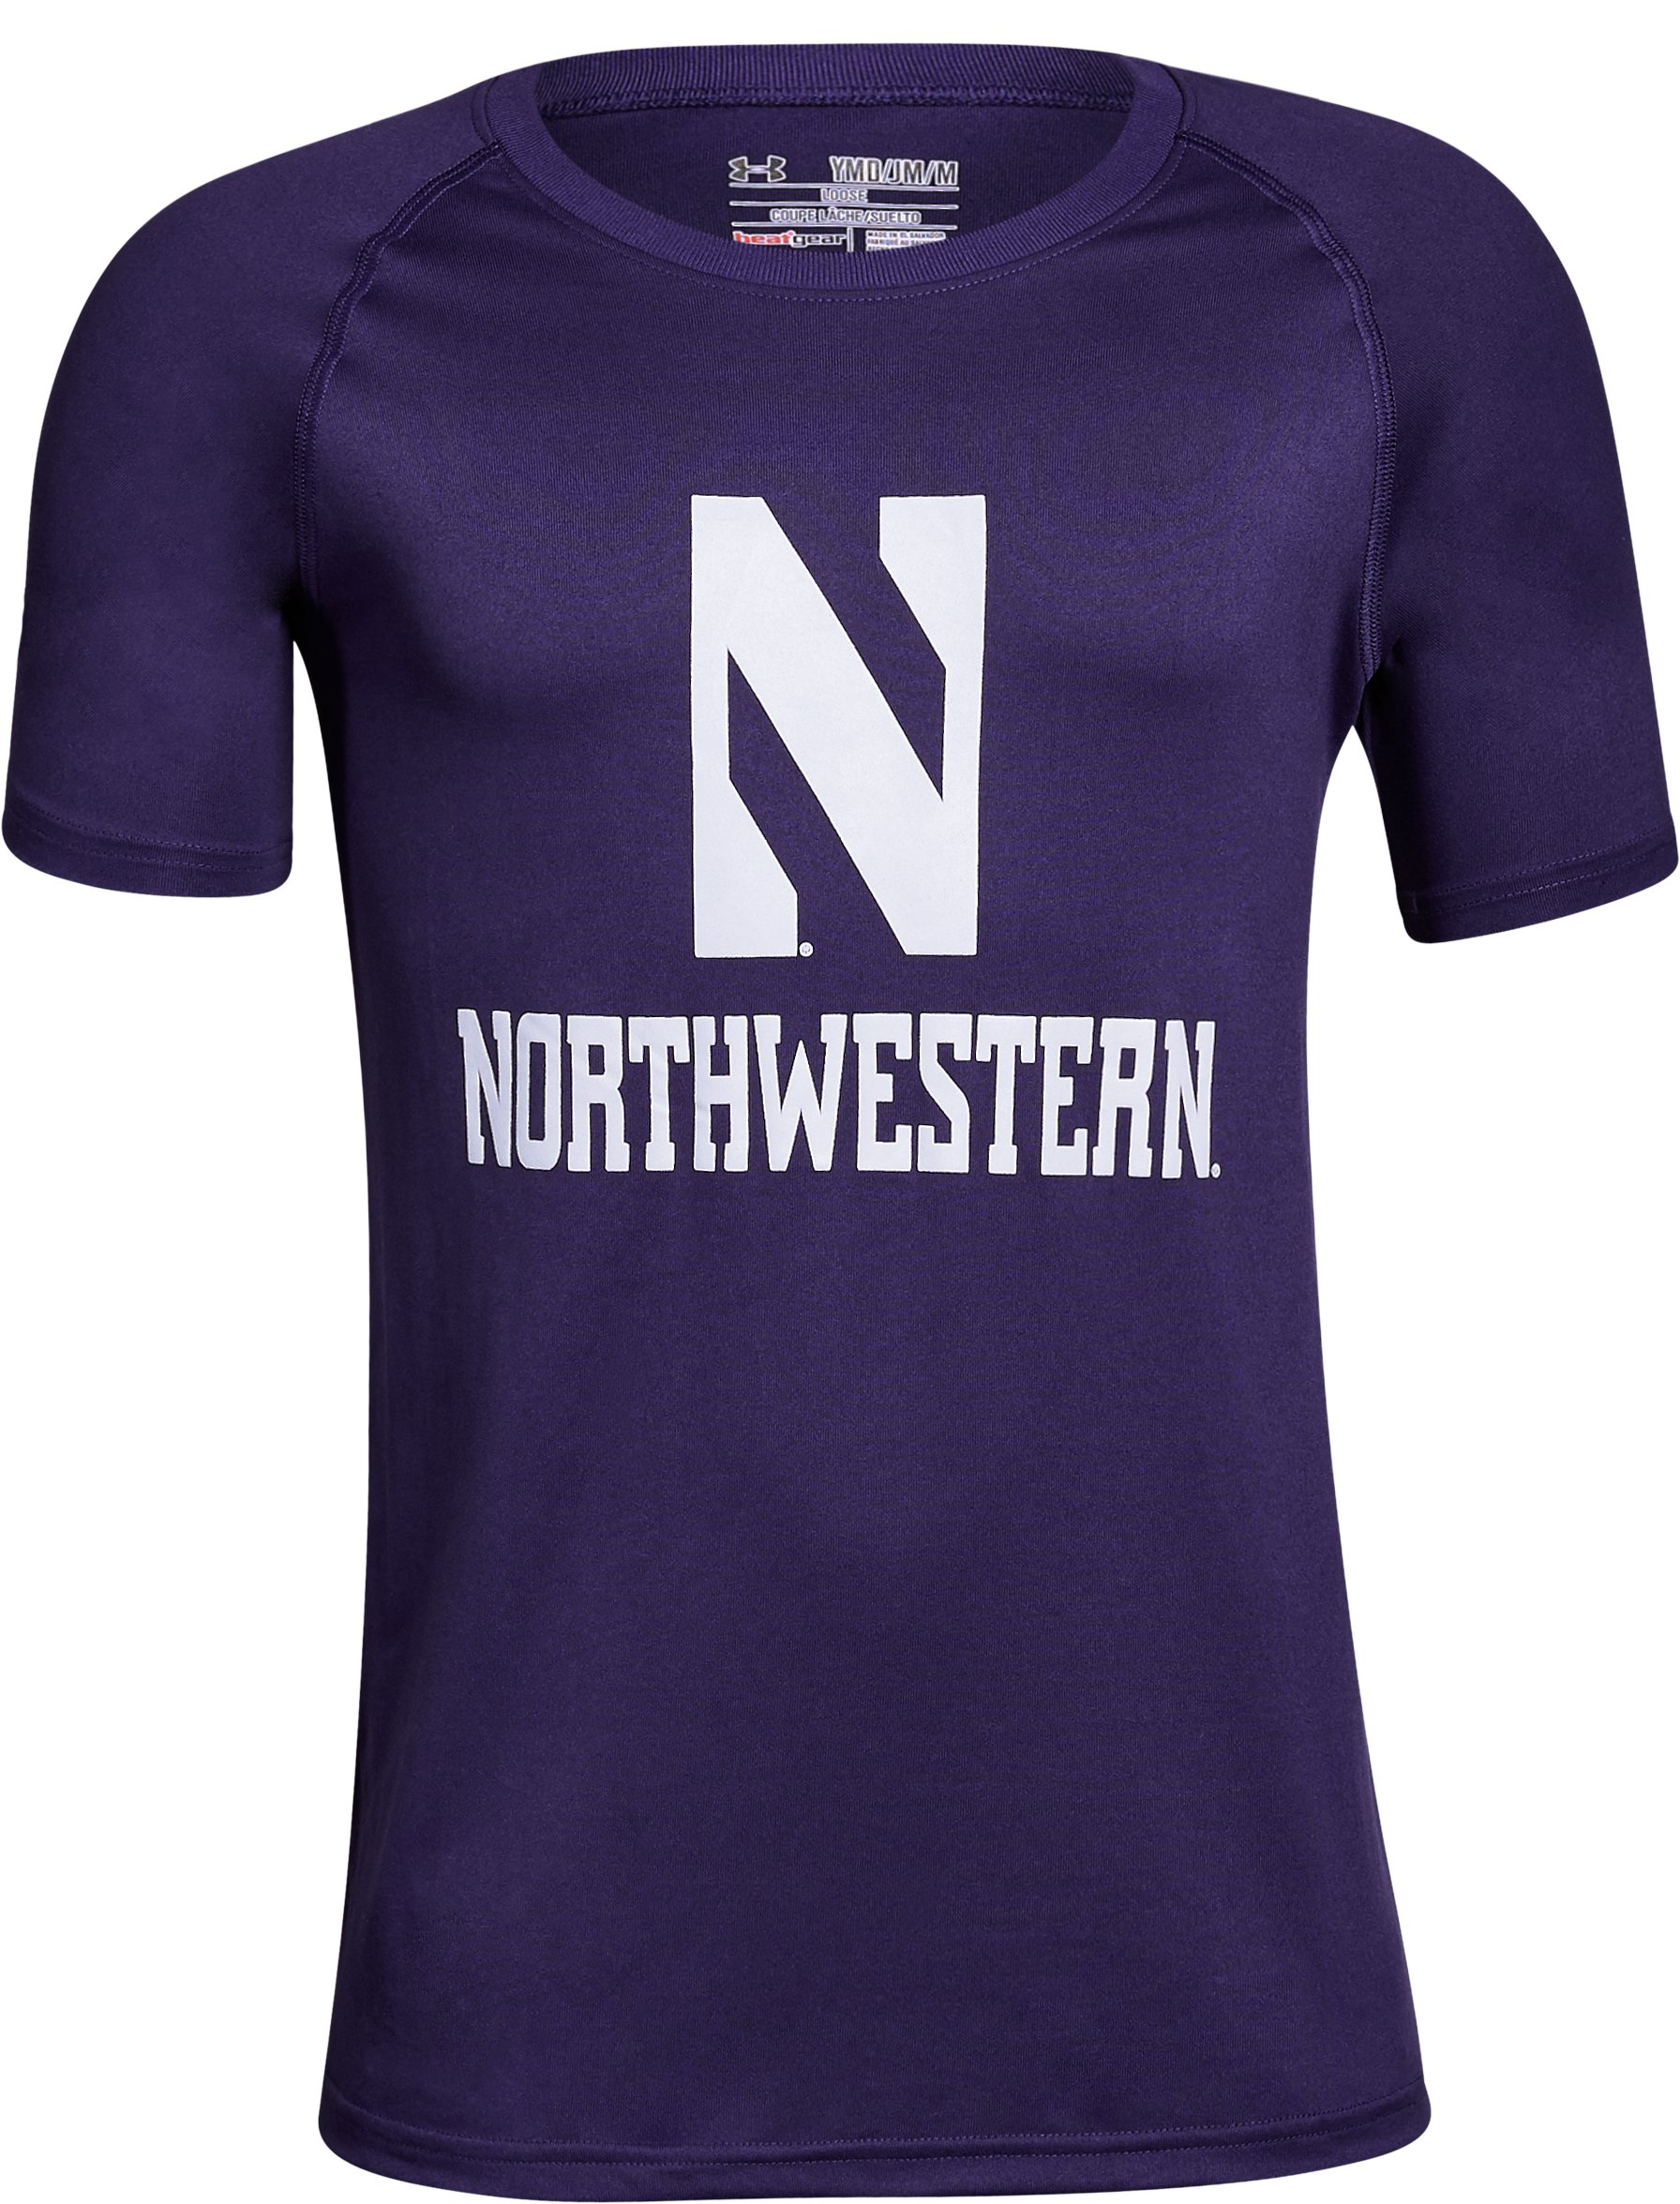 Boys' Northwestern Charged Cotton® T-Shirt, Purple, undefined